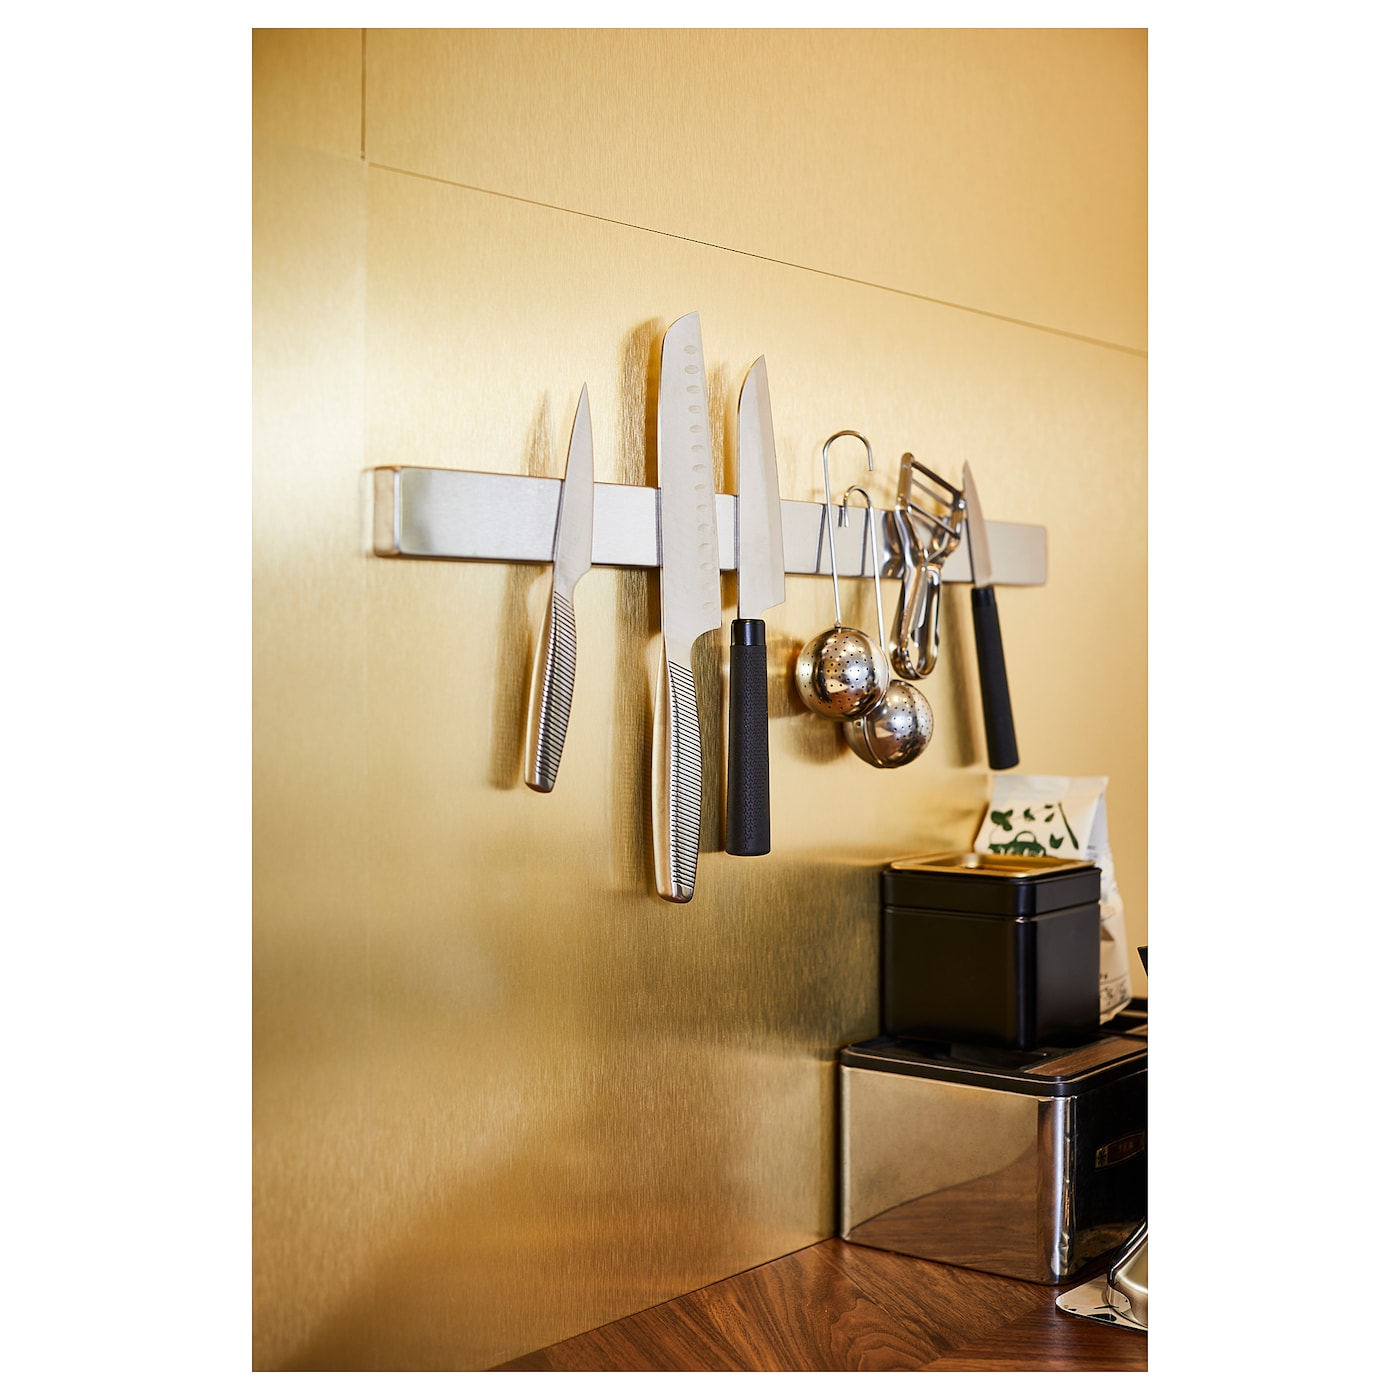 KUNGSFORS Magnetic knife rack, stainless steel